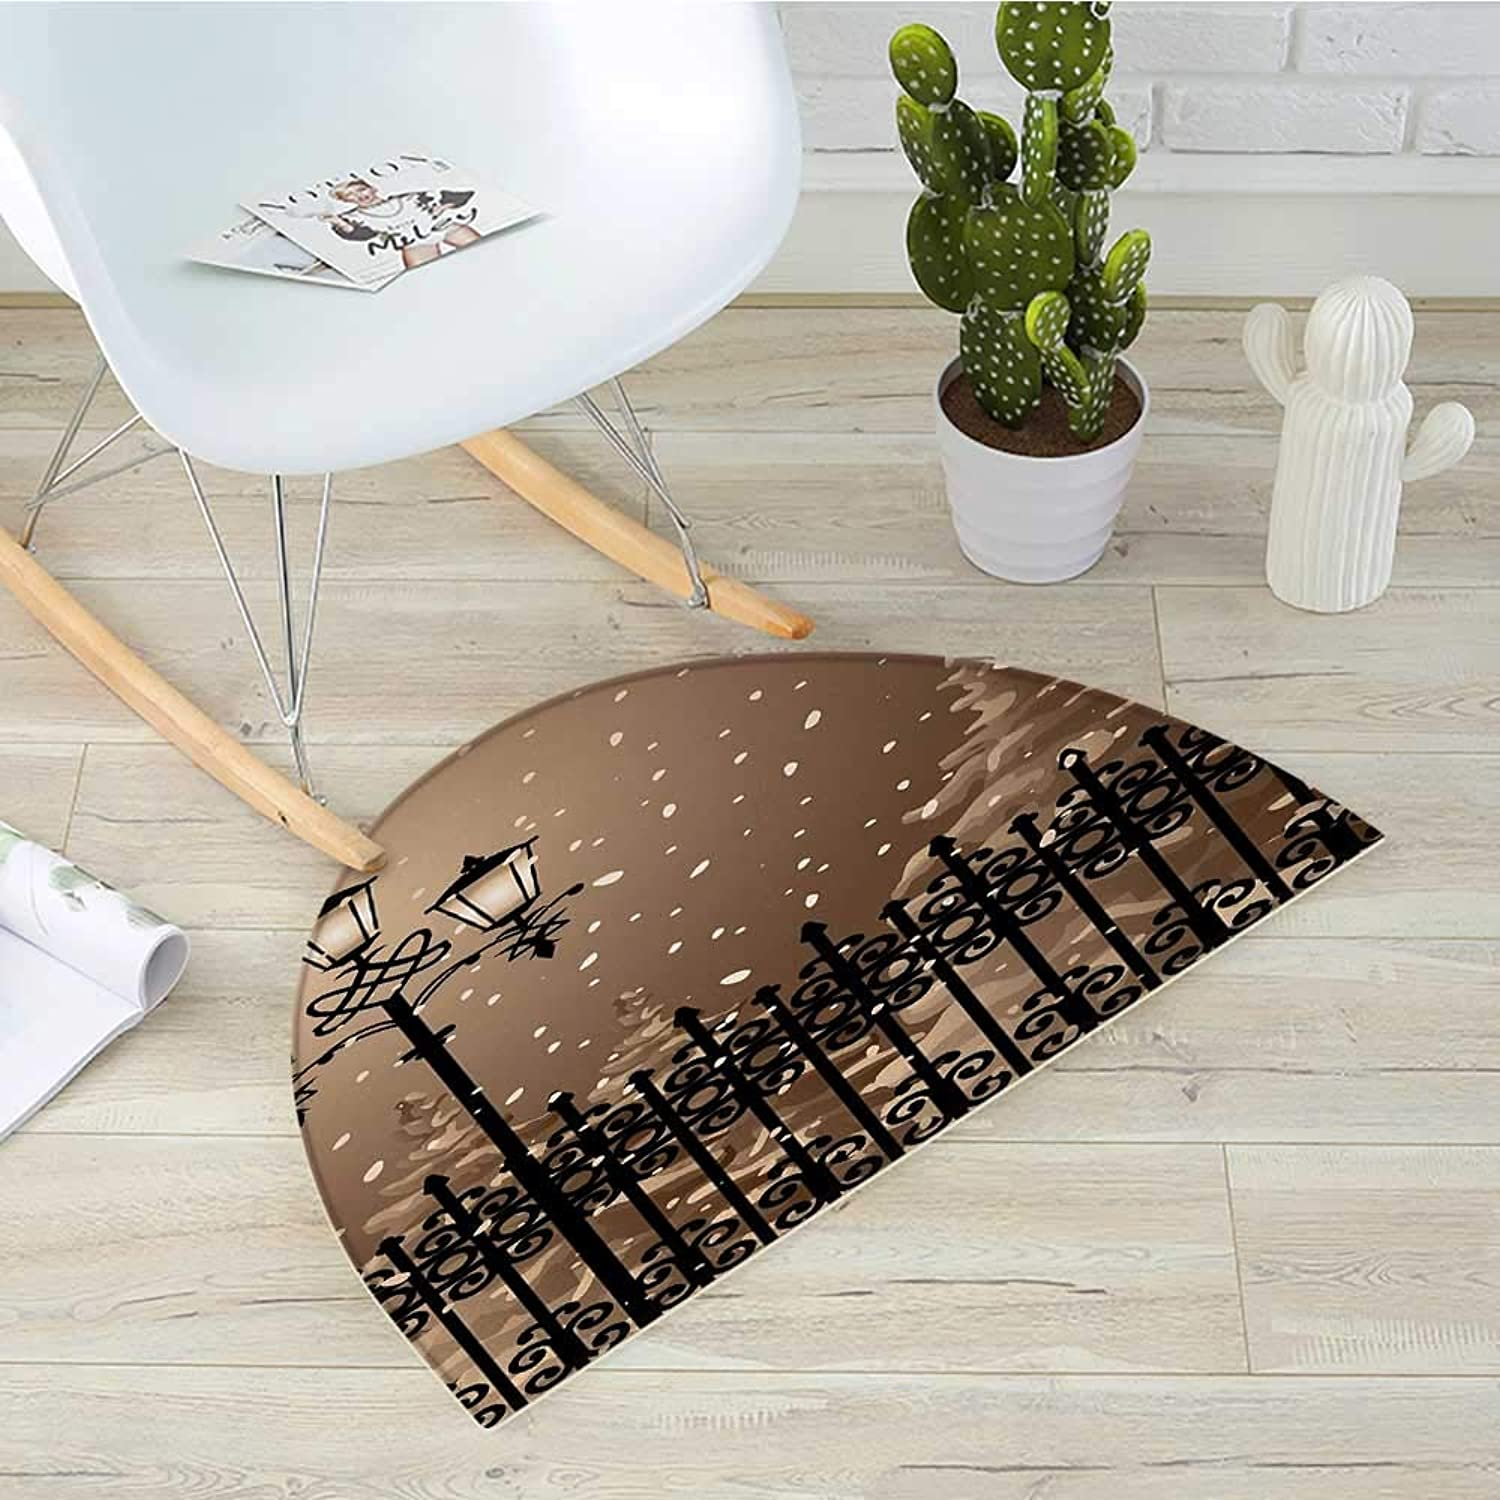 Lantern Half Round Door mats Frozen Scenery Iron Fences City Evening Snow and Lanterns Full Moon Graphic Bathroom Mat H 35.4  xD 53.1  Light Brown Black